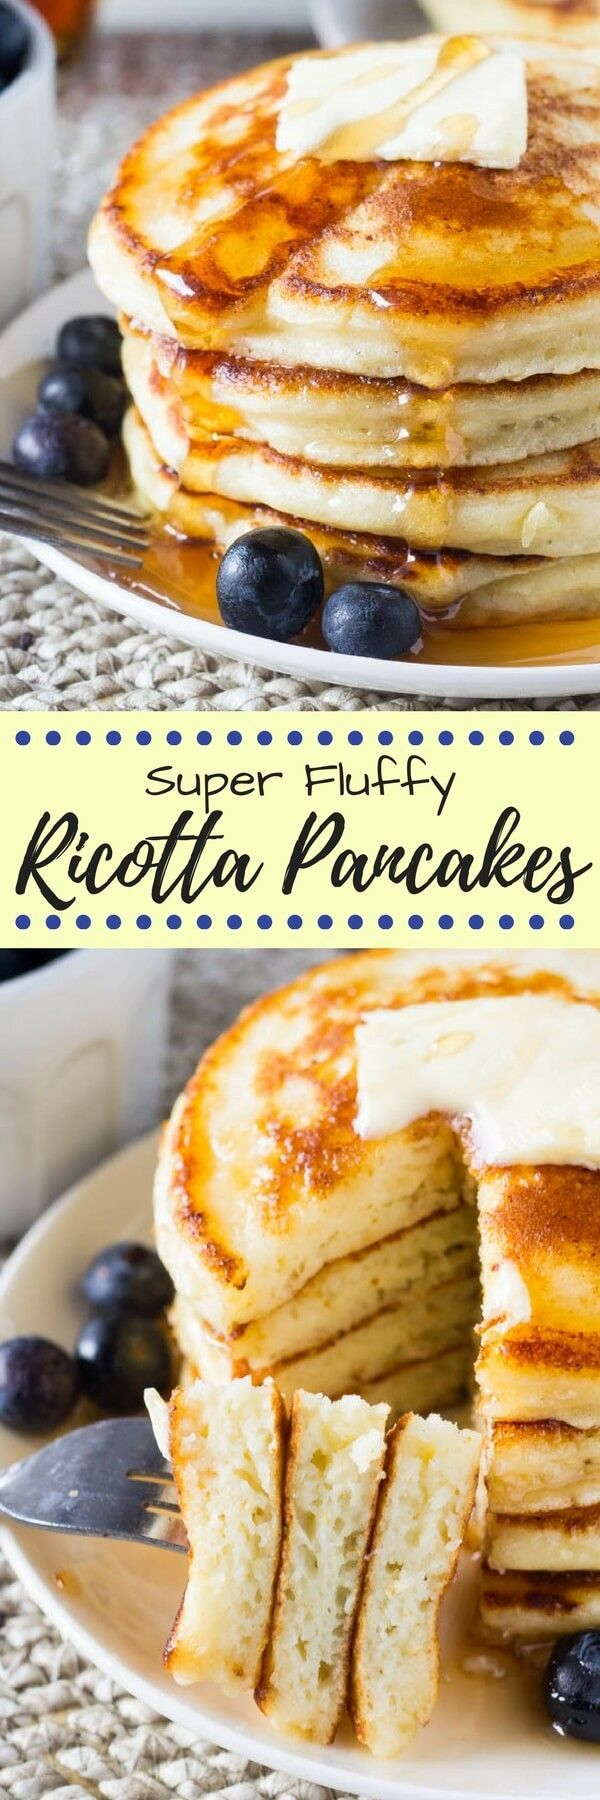 Ricotta pancakes have a deliciously creamy flavor and the fluffiest texture. The perfect way to make your pancakes extra special. http://www.justsotasty.com